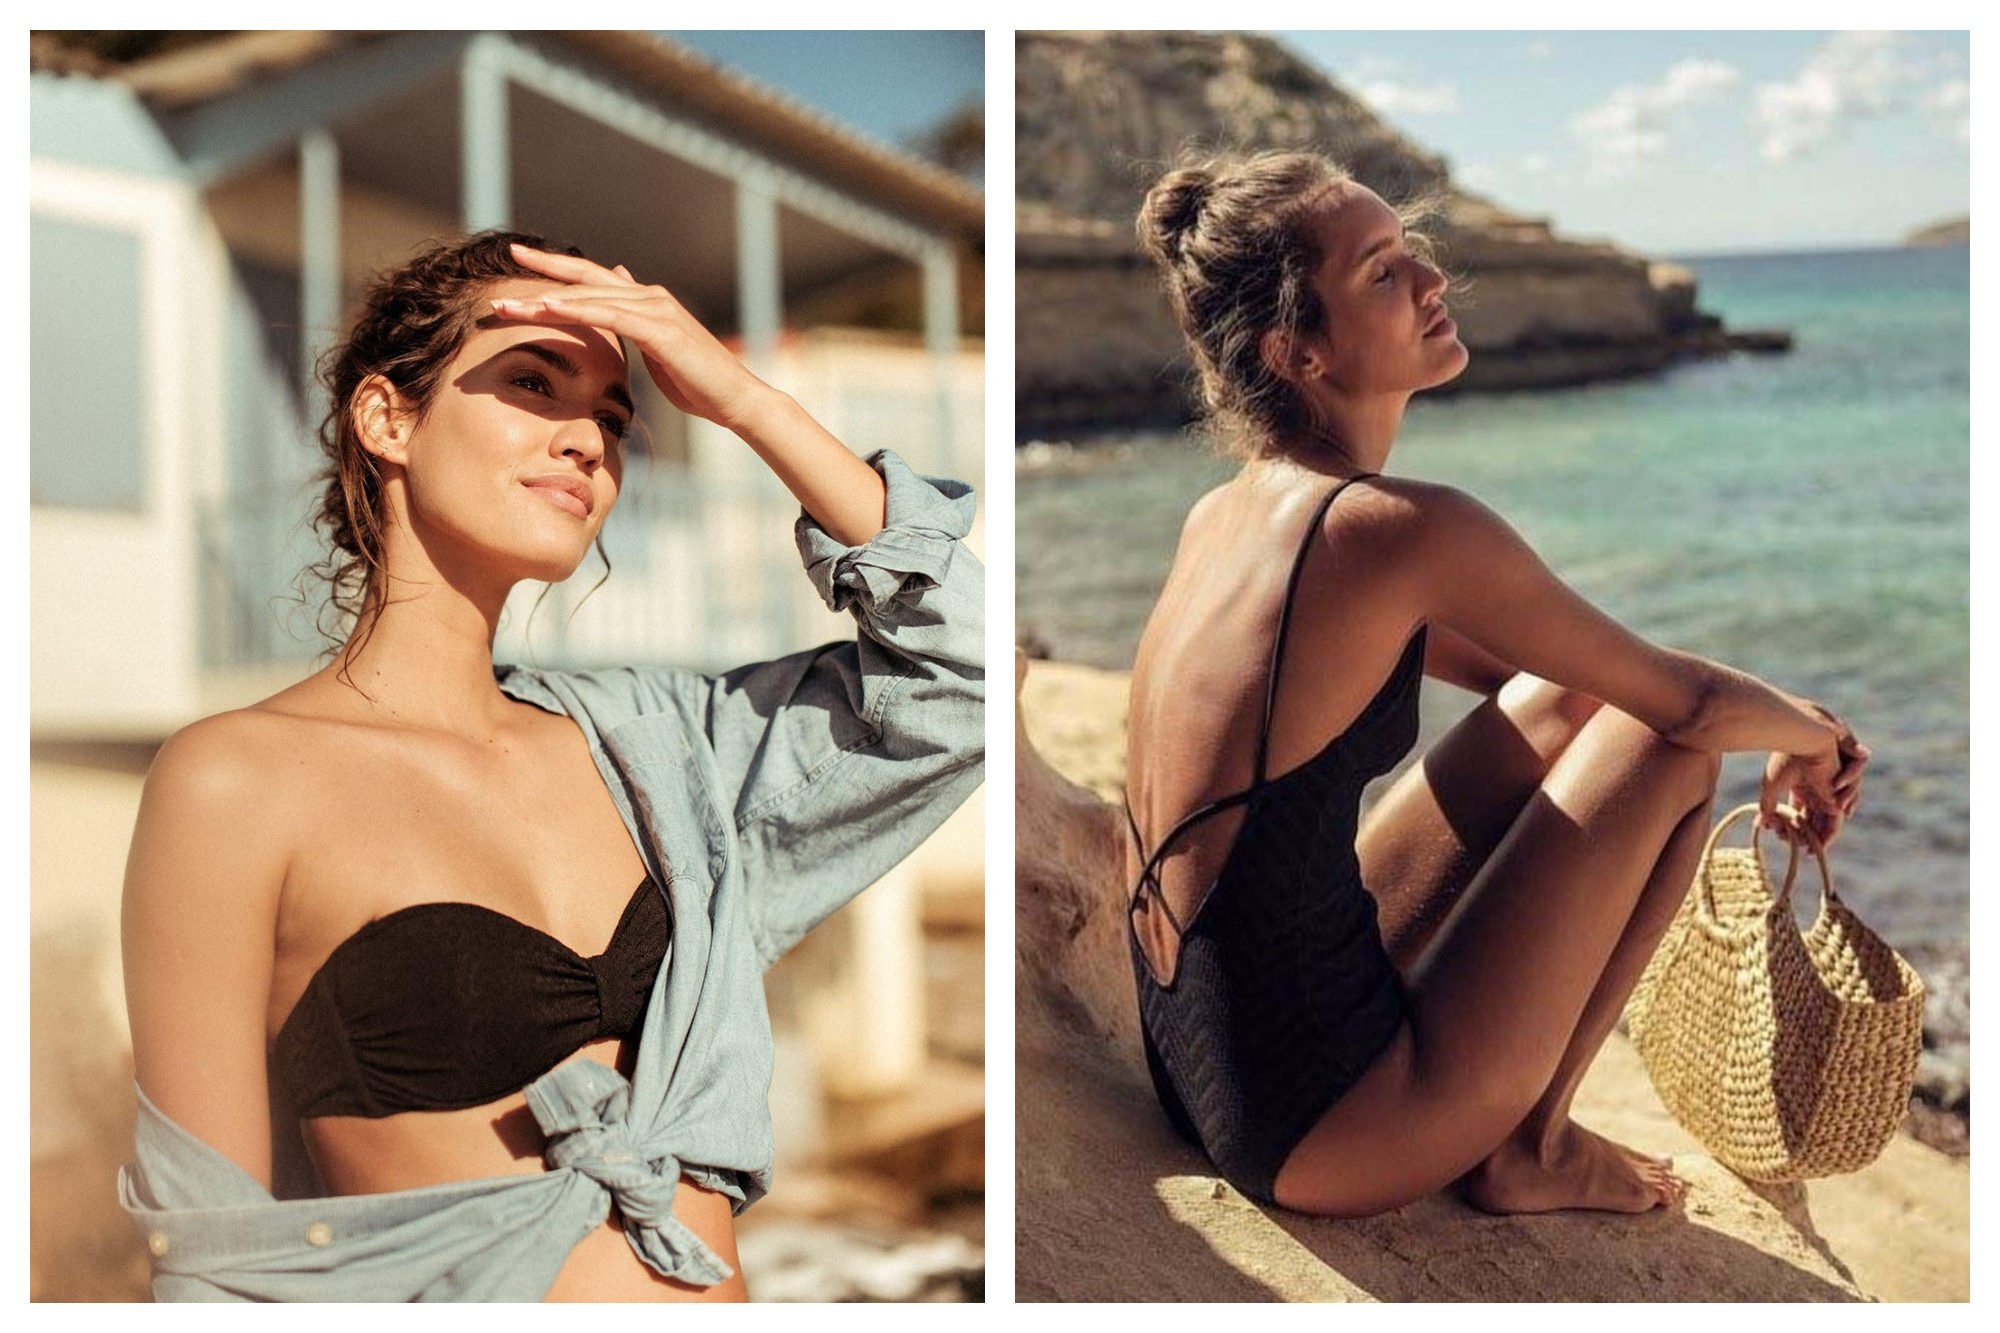 A woman on a beach wearing a strapless bikini top with a pale blue shirt off the shoulder (left). The same woman sitting on the rocks close to the water wearing a cross-back one-piece swimsuit and holding a straw handbag by French fashion brand Ysé (right).